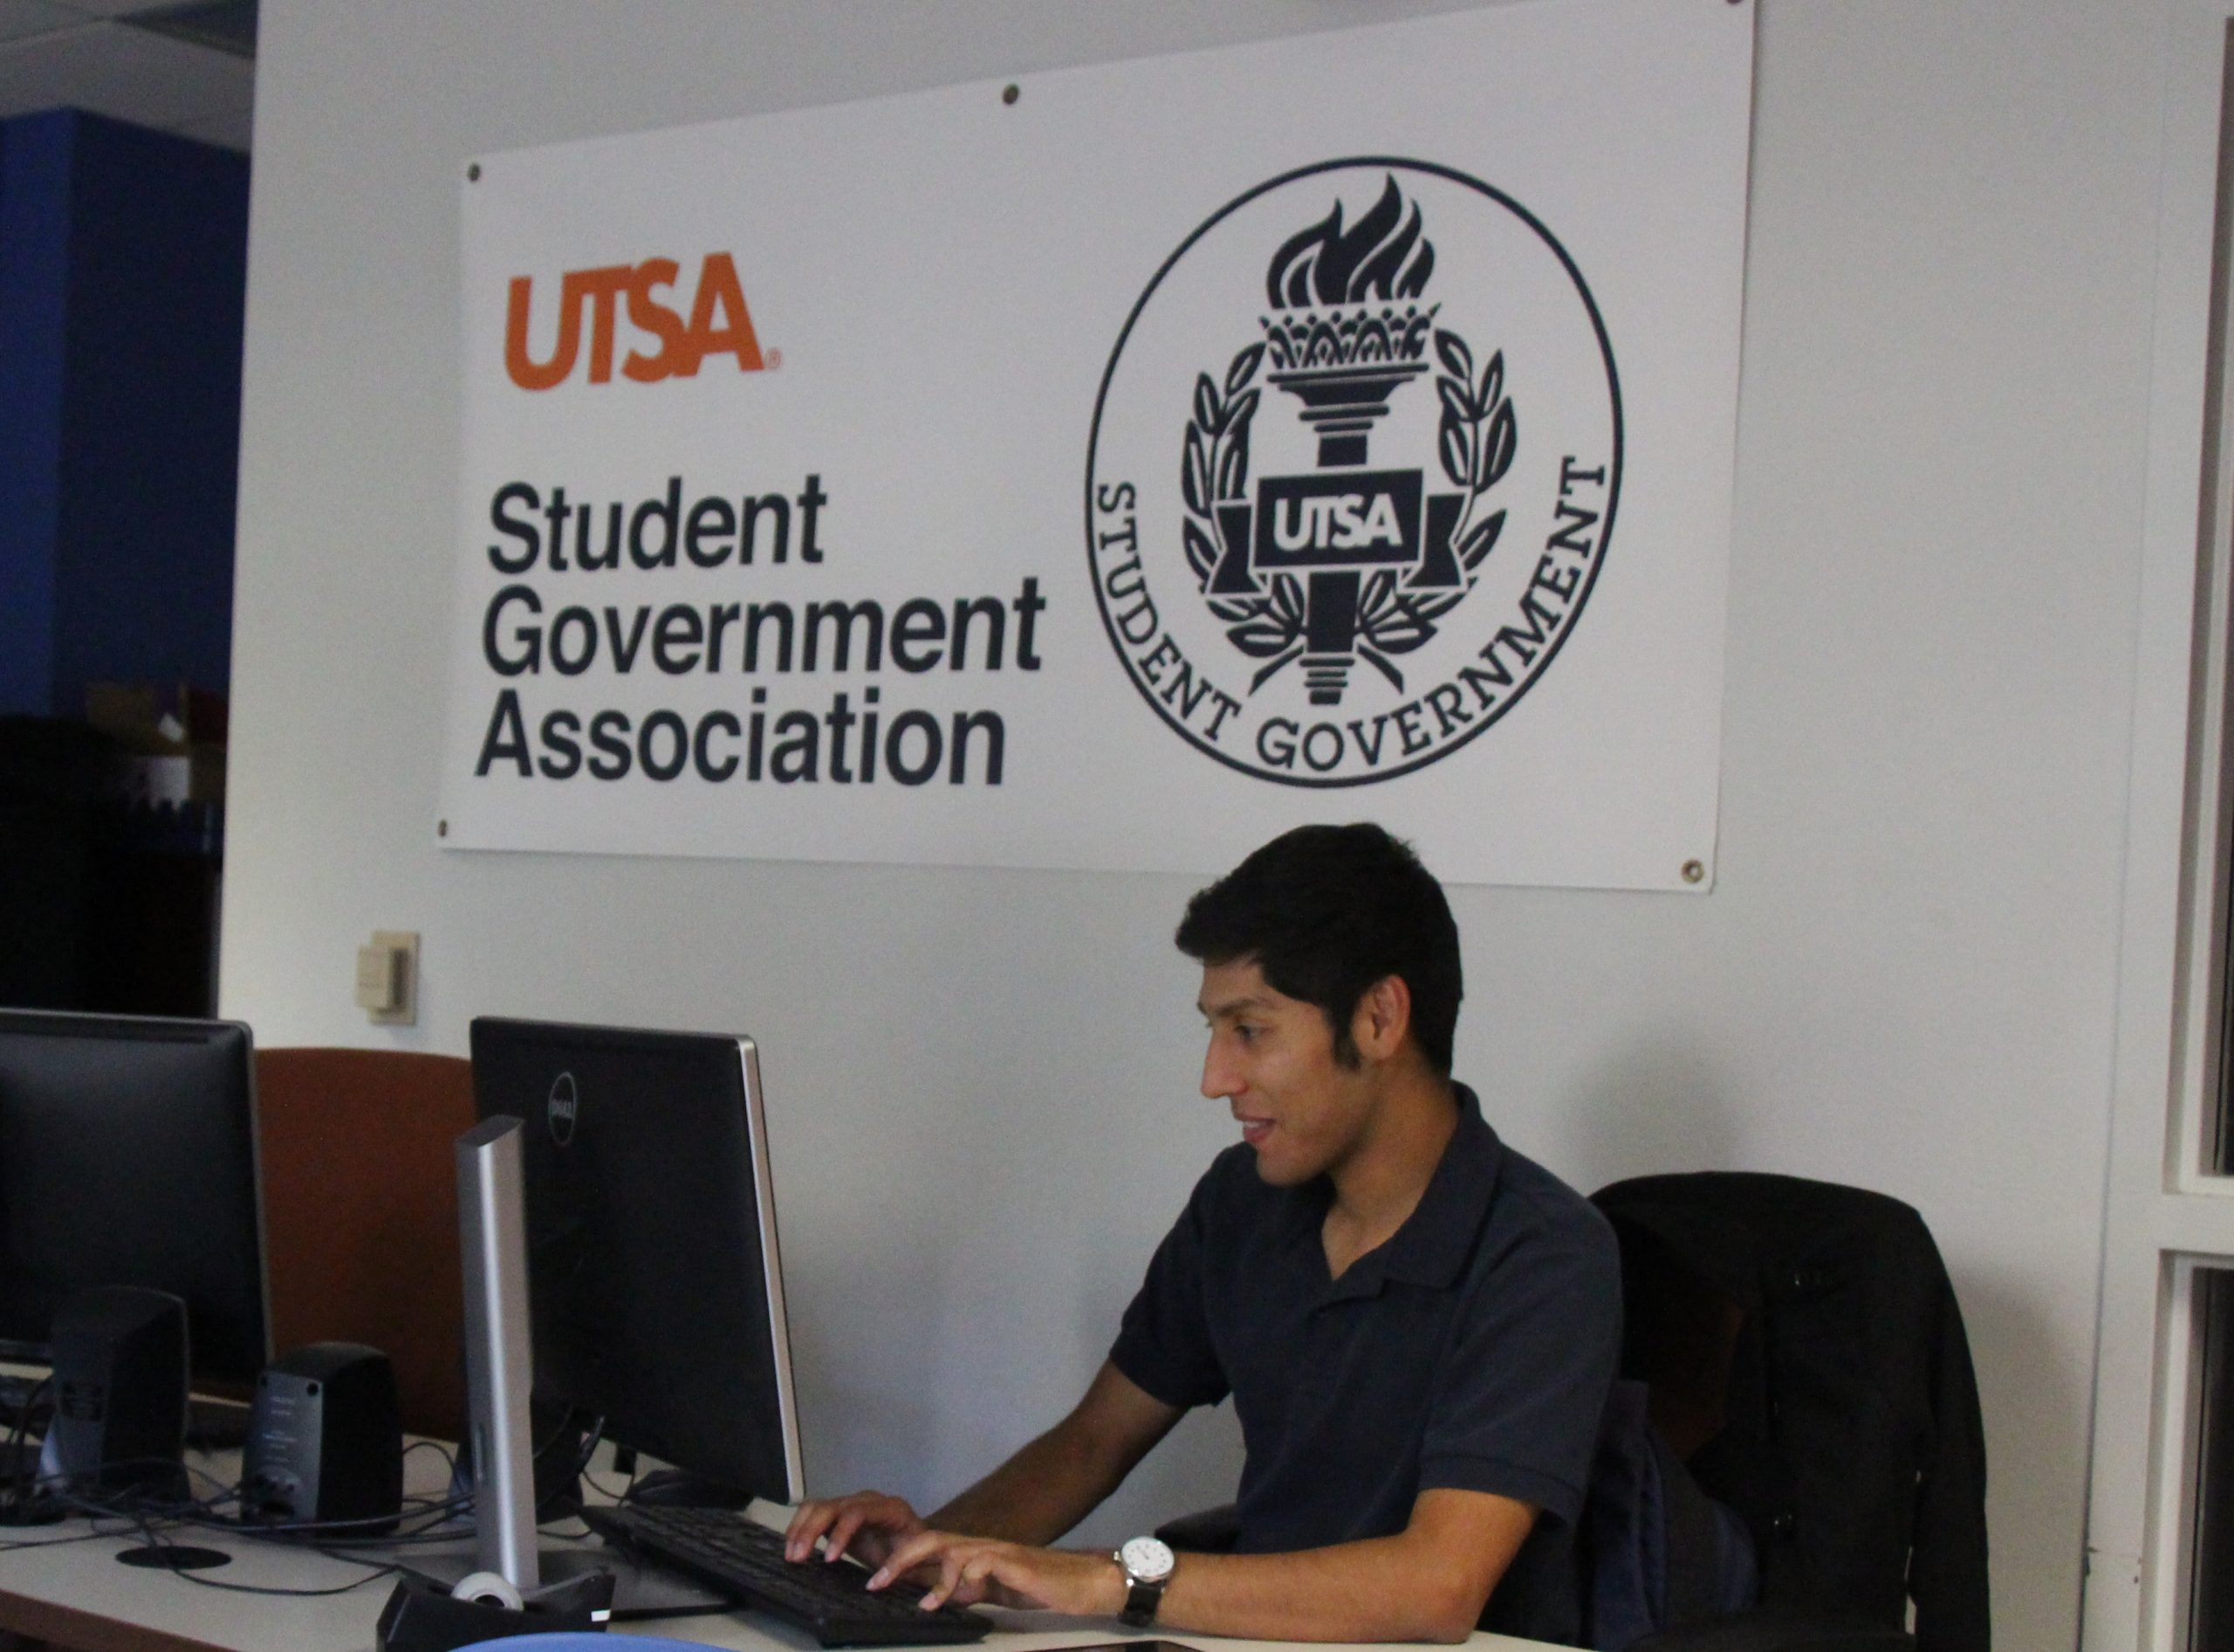 Members of the Student Government Association work in their office to draft memorandums. Photo Courtesy of Joseph Mabry